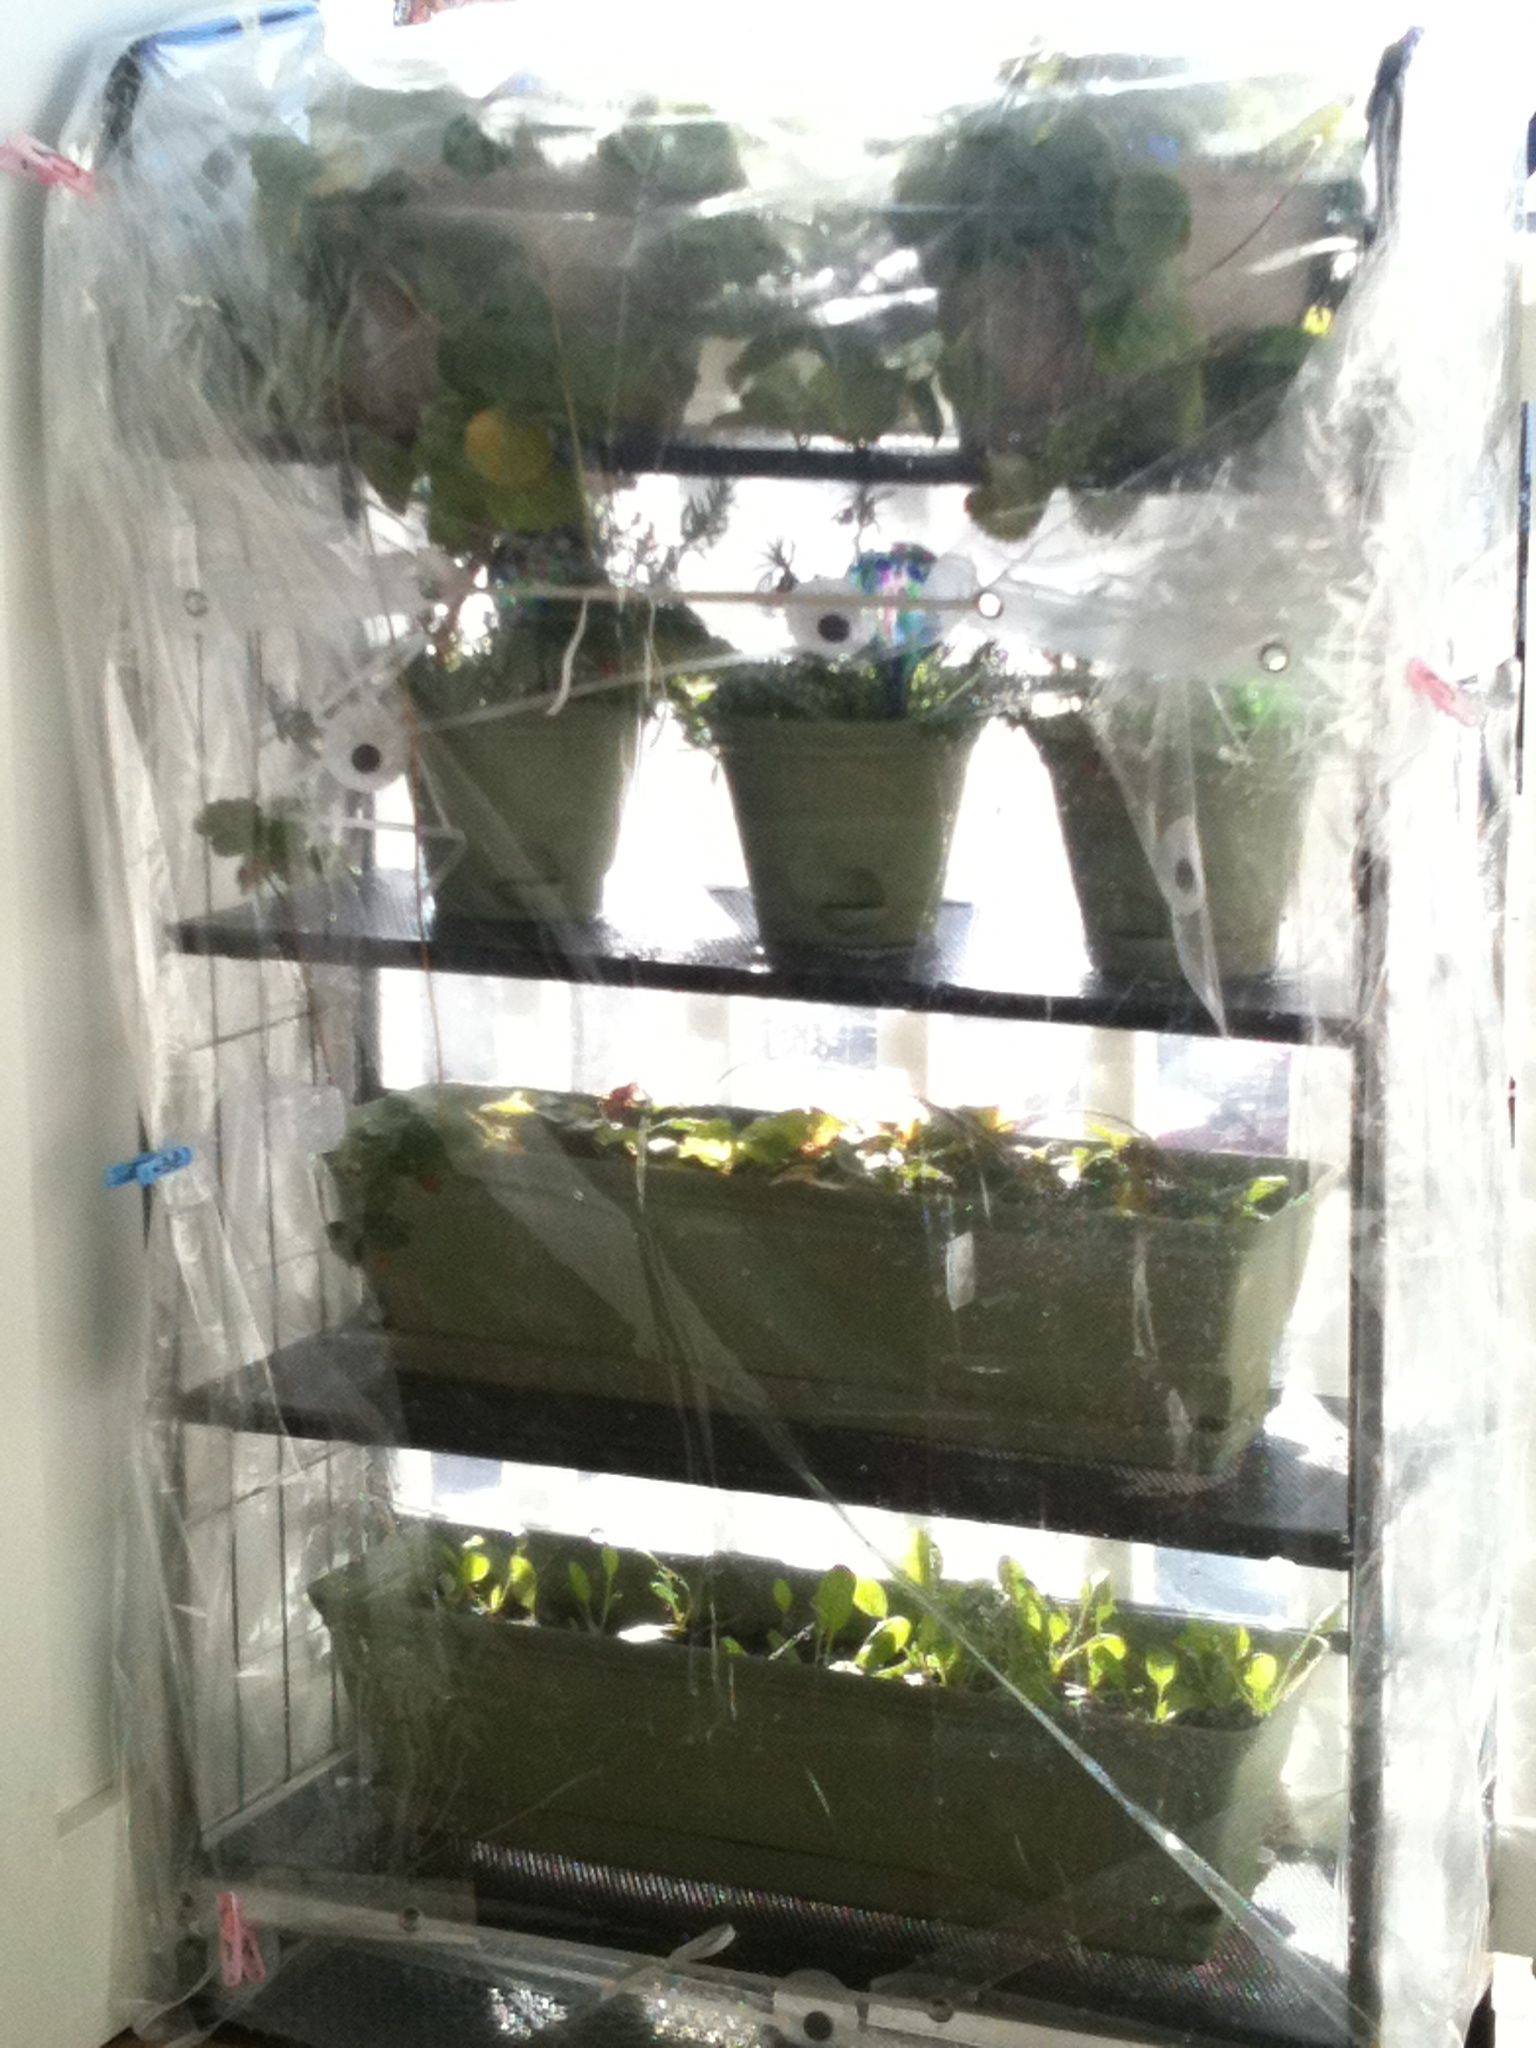 DIY Greenhouse...using a metal shelf, two clear shower curtains and on small boat slip designs, small spring designs, small greenhouses for backyards, small boathouse designs, small business designs, small industrial building designs, small glass designs, small flowers designs, glass greenhouses designs, small green roof designs, small wood designs, small garden designs, small carport designs, small gazebo designs, small science designs, small floral designs, small pre-built homes, small hotel designs, small bell tower designs, small sauna designs,